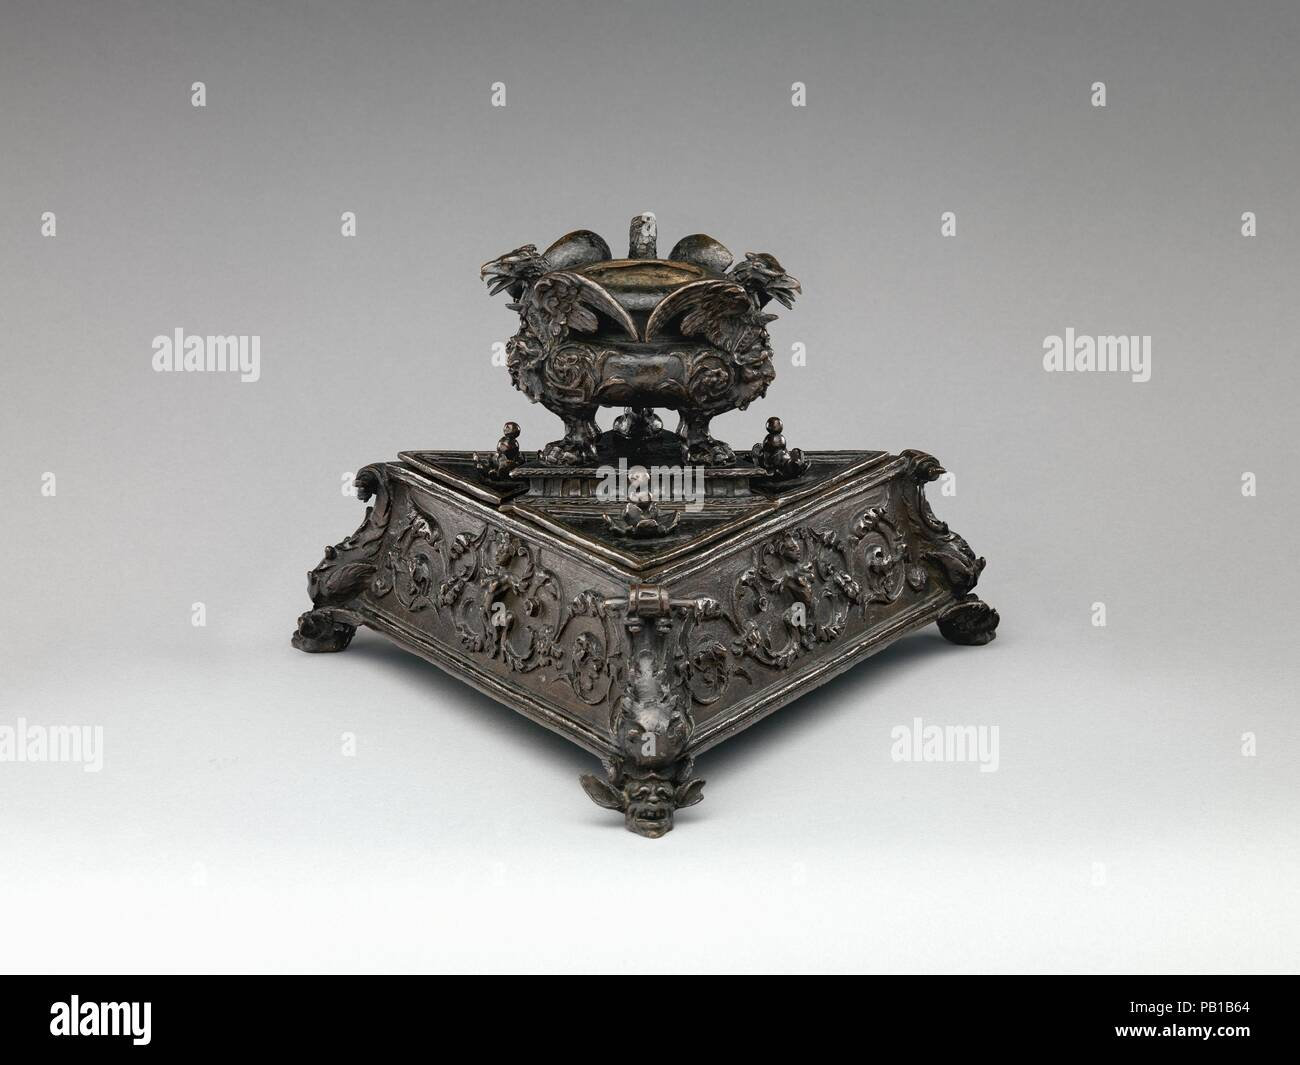 Inkstand. Culture: Italian, probably Padua. Dimensions: Overall (confirmed): 7 1/8 × 11 3/8 × 10 1/4 in. (18.1 × 28.9 × 26 cm)  . 45a (confirmed): 3 1/4 × 11 3/8 × 10 1/4 in. (8.3 × 28.9 × 26 cm)  .45b (confirmed): 4 × 4 1/8 × 4 5/8 in. (10.2 × 10.5 × 11.7 cm)  .45c (confirmed): 1 × 3 3/4 × 3 1/8 in. (2.5 × 9.5 × 7.9 cm)  .45d (confirmed): 1 1/8 × 3 3/4 × 3 1/4 in. (2.9 × 9.5 × 8.3 cm)  .45e (confirmed): 1 × 3 3/4 × 3 1/4 in. (2.5 × 9.5 × 8.3 cm). Date: ca. 1530. Museum: Metropolitan Museum of Art, New York, USA. - Stock Image